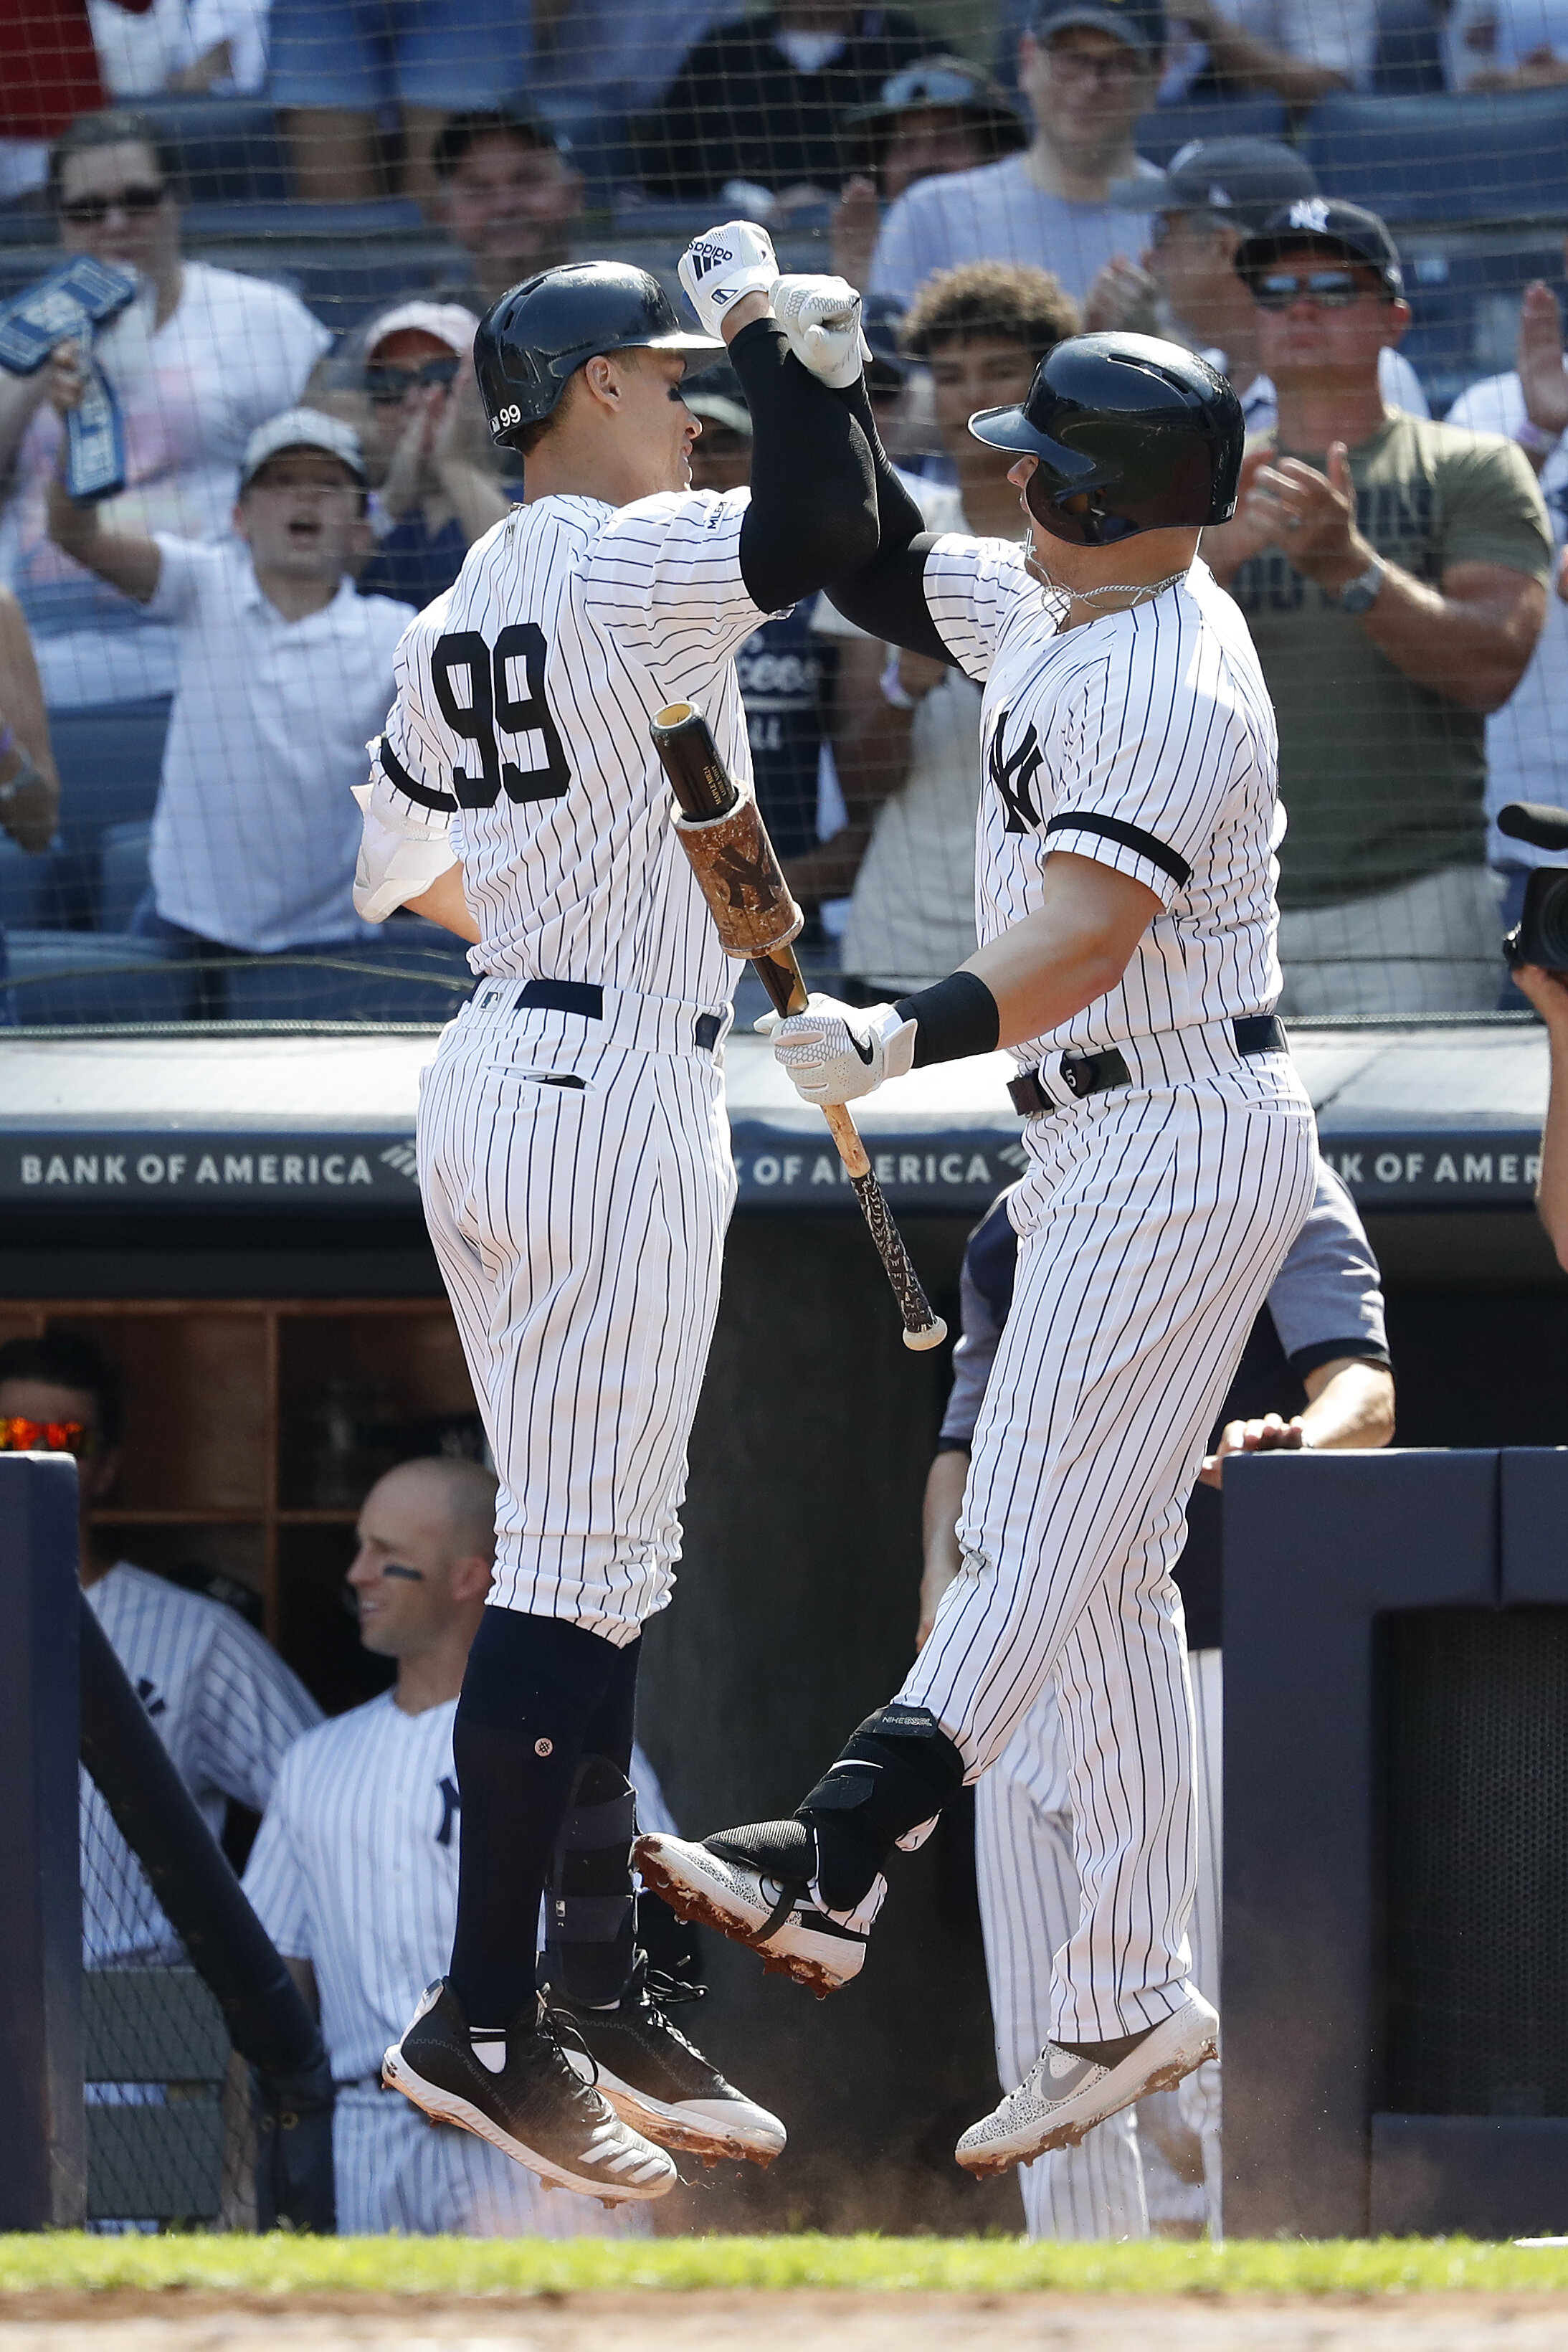 The Yankees have been great for the past few regular seasons but struggled to make any headway come playoffs. Fans are hoping that the Yanks can turn the corner and make their way to the World Series this season.  Photo from The Associated Press.